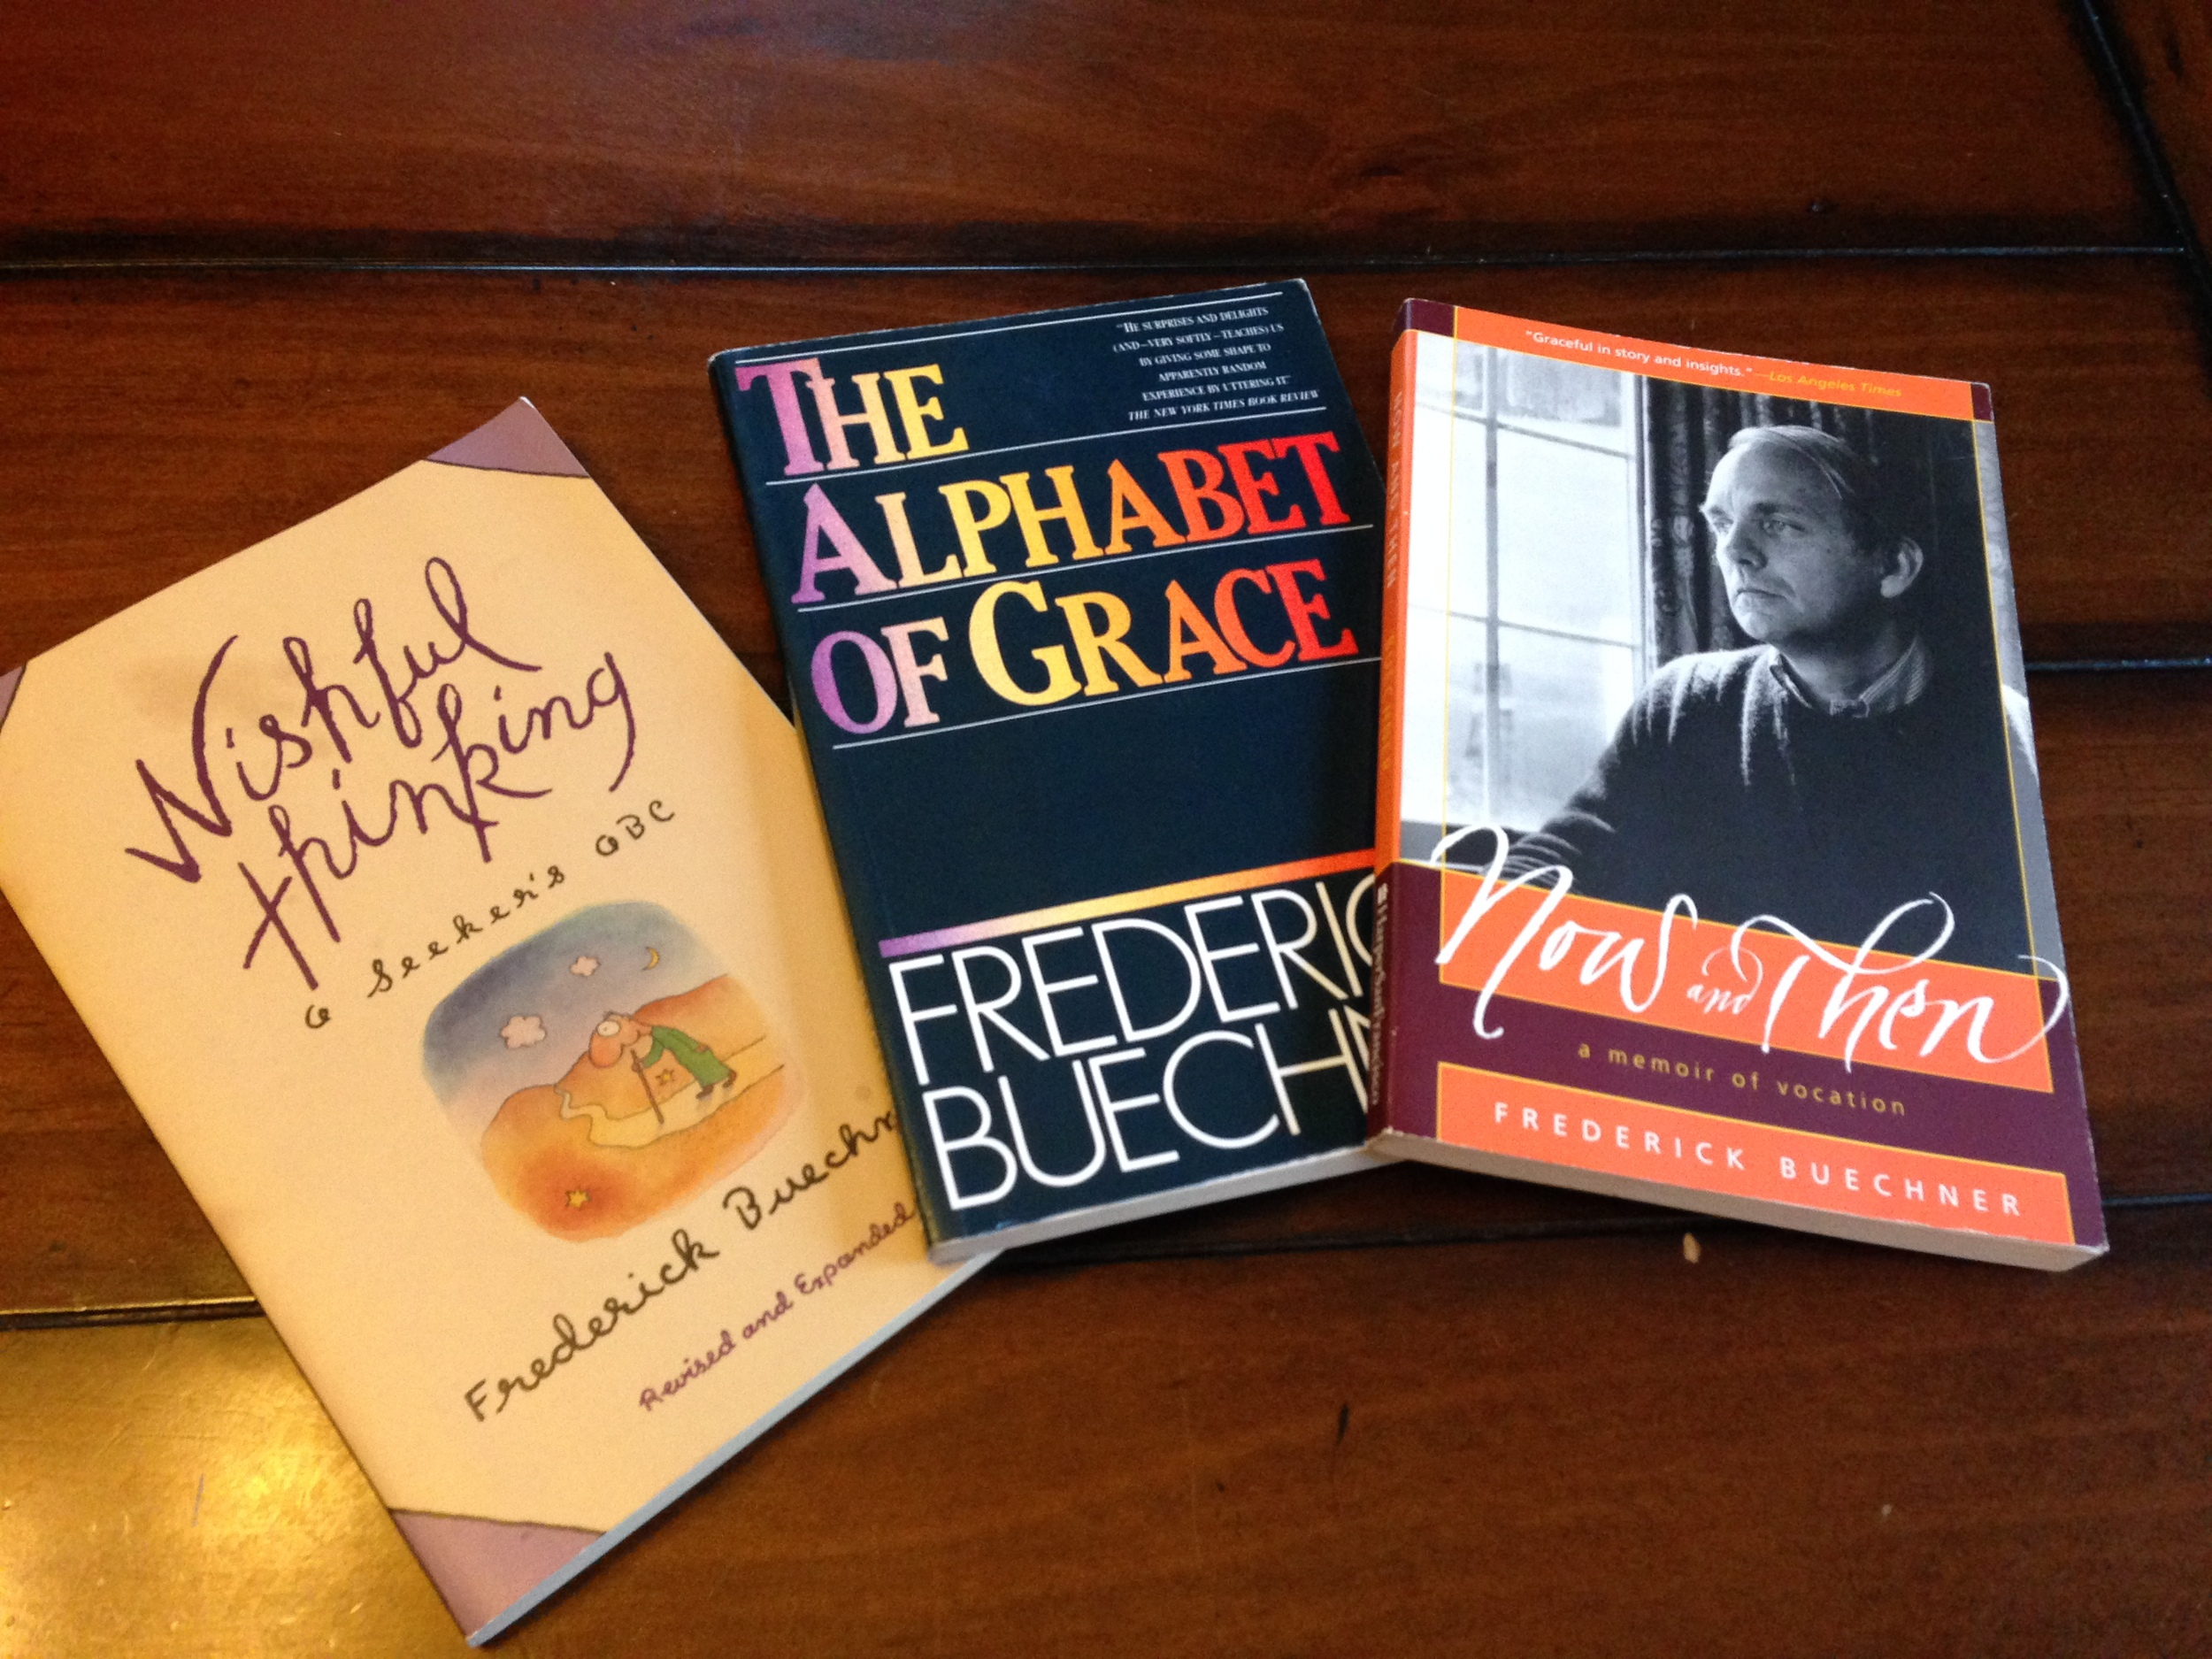 Essential Frederick Buechner readingon vocation and calling.